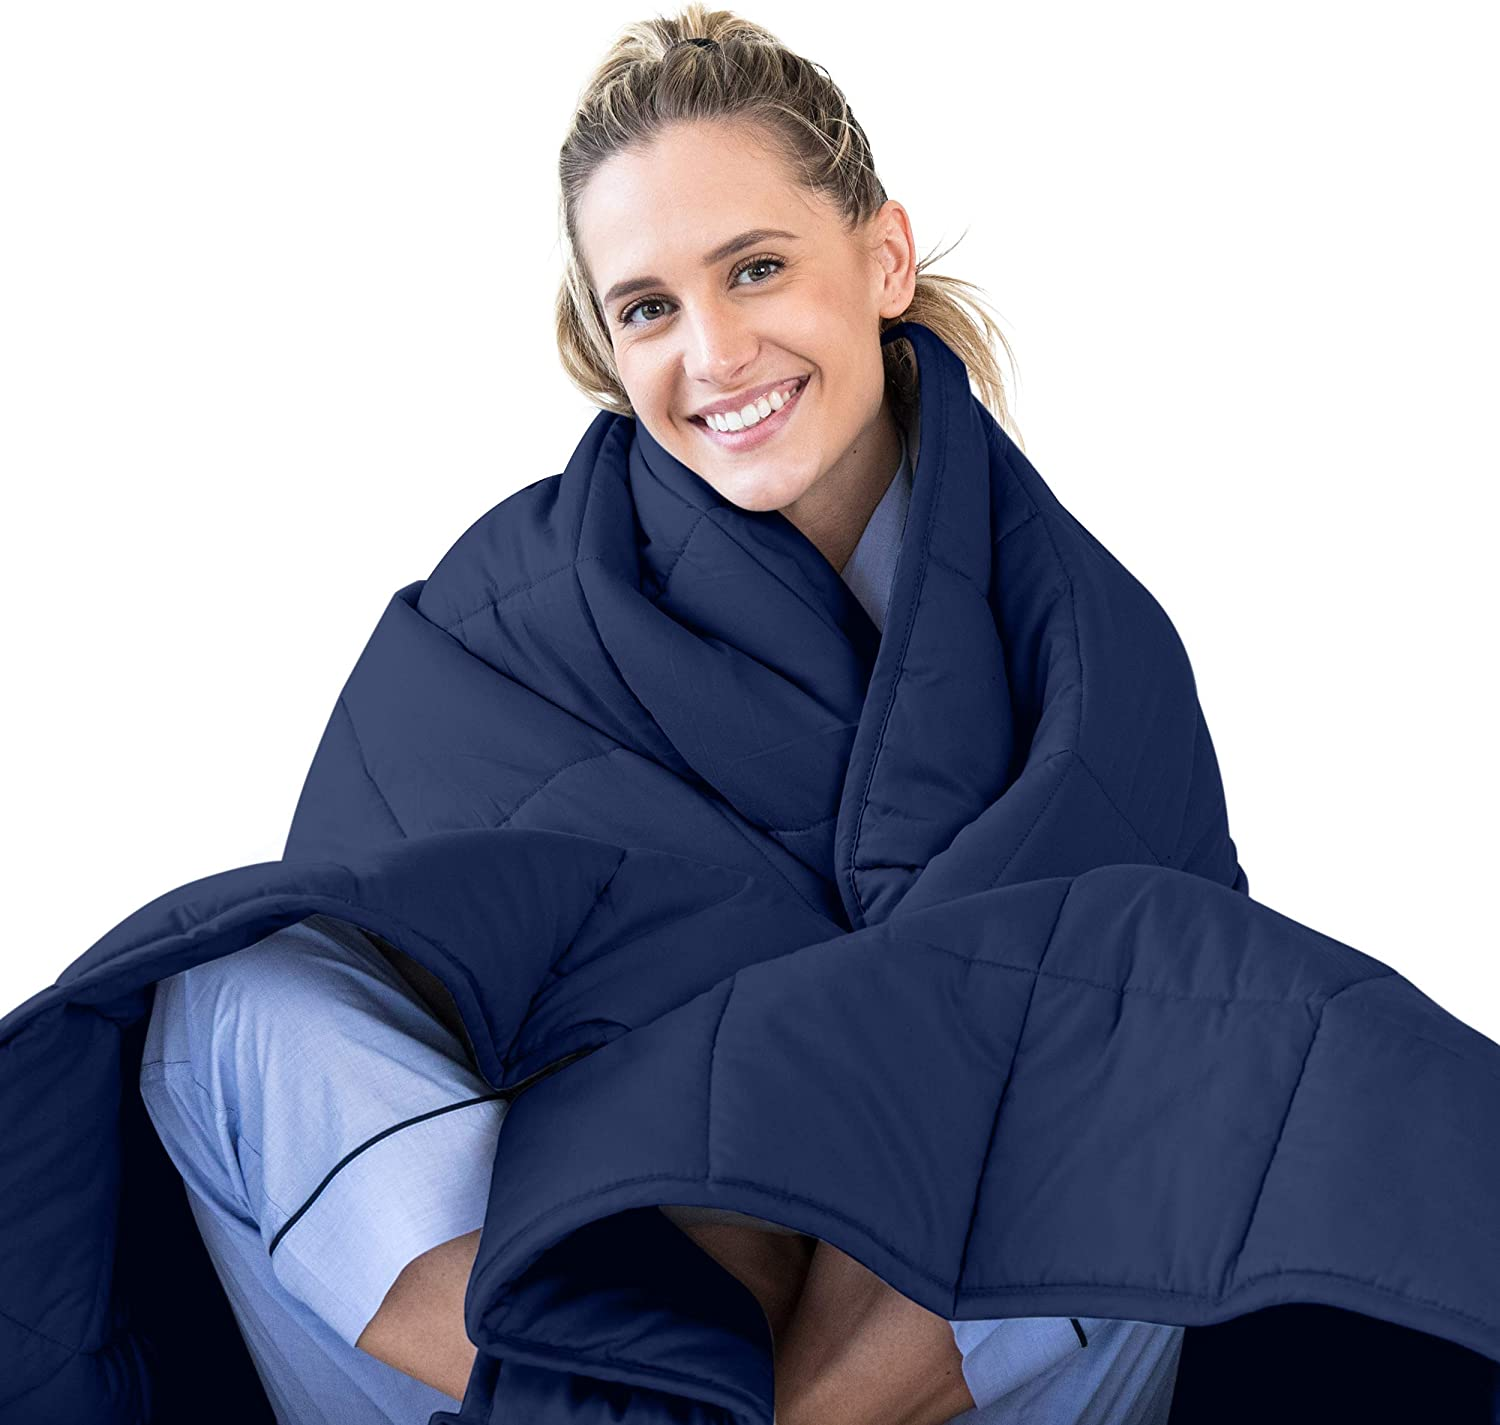 LUNA Adult Weighted Blanket | Individual Use - 20 lbs - 60x80 - Queen Size Bed | 100% Oeko-Tex Certified Cooling Cotton & Glass Beads | USA Designed | Heavy Cool Weight | Navy